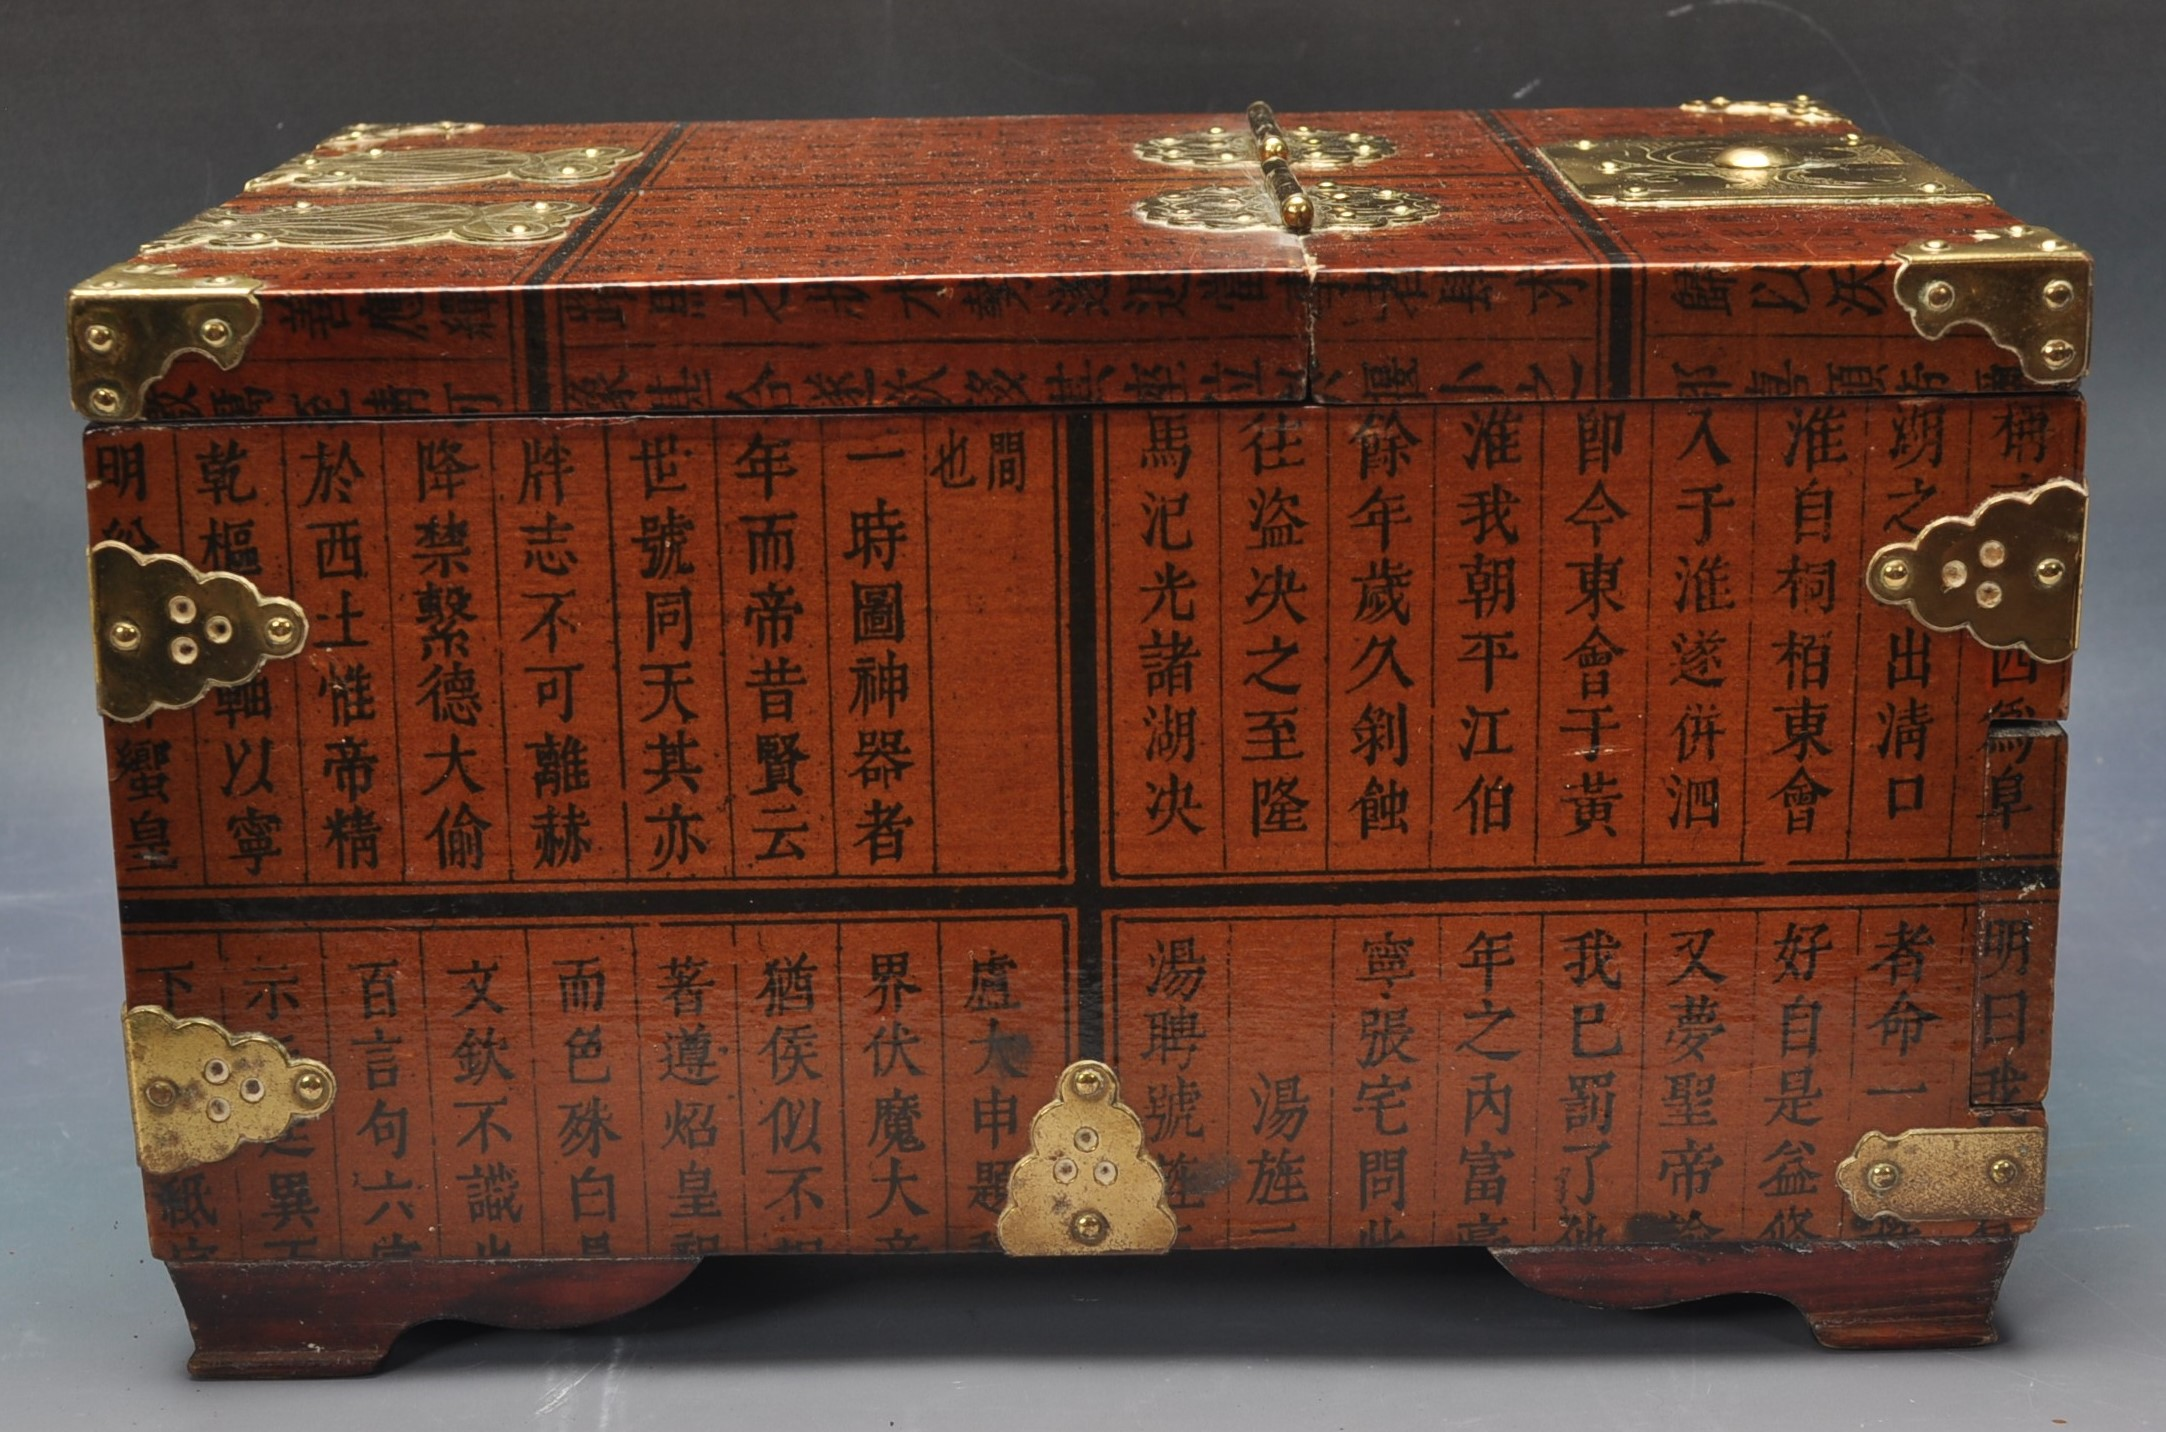 20TH CENTURY CHINESE LACQUER & BRASS BOUND CASKET - Image 3 of 4